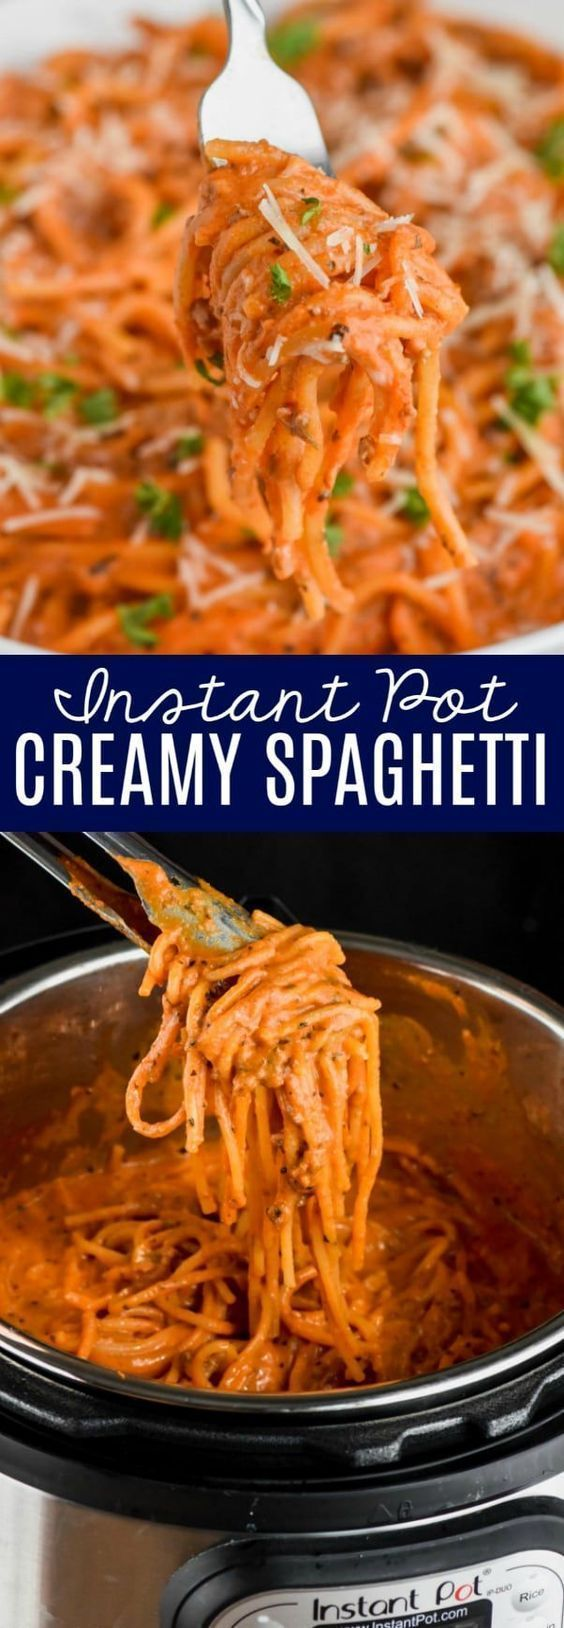 #weeknight #spaghetti #amazing #instant #perfect #creamy #minute #dinner #option #this #easy #and #p...